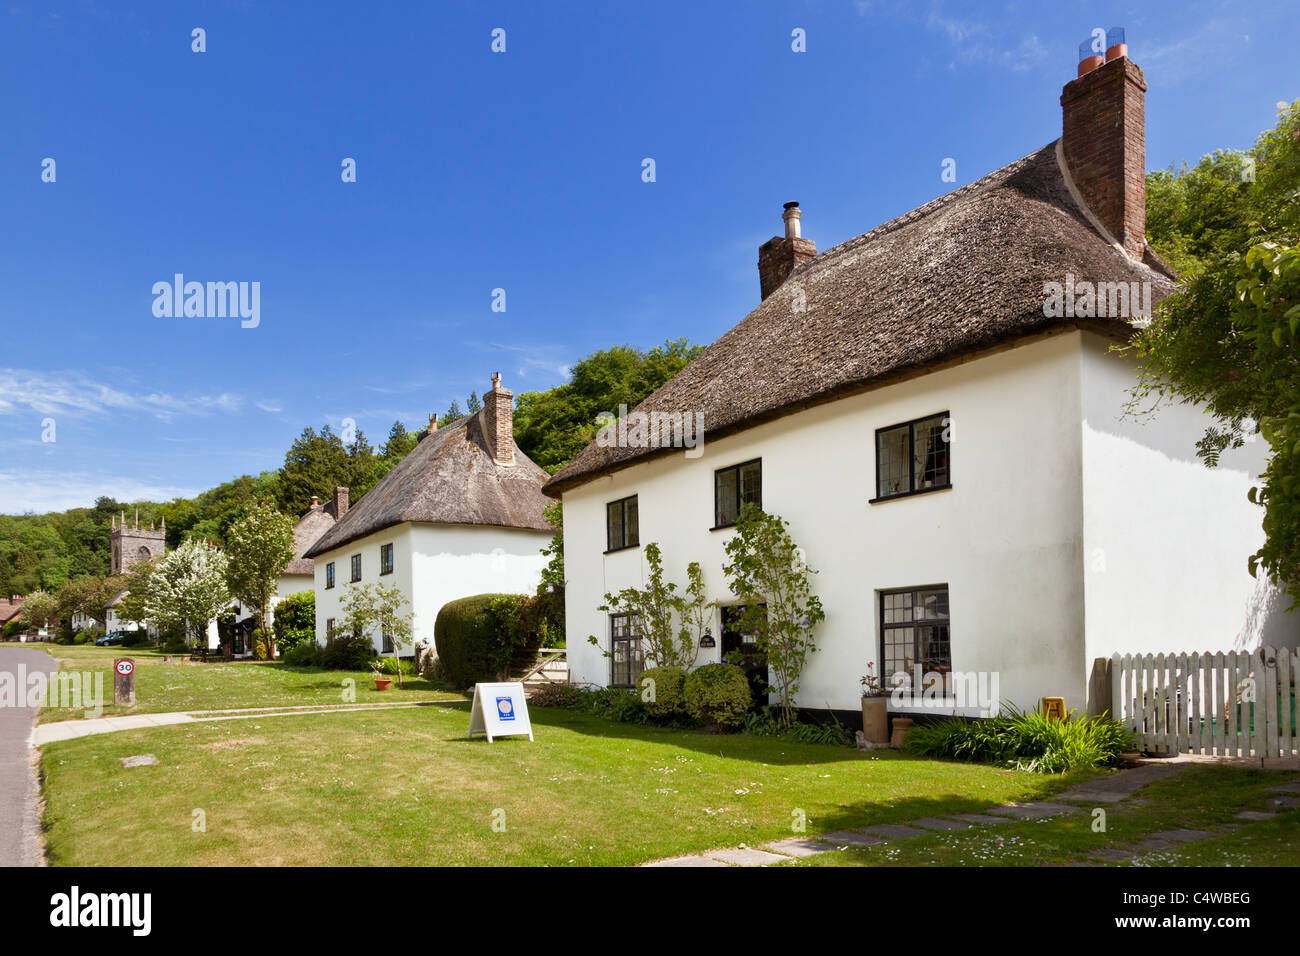 Row of traditional detached thatched cottages, Milton Abbas, Dorset, England, UK - Stock Image